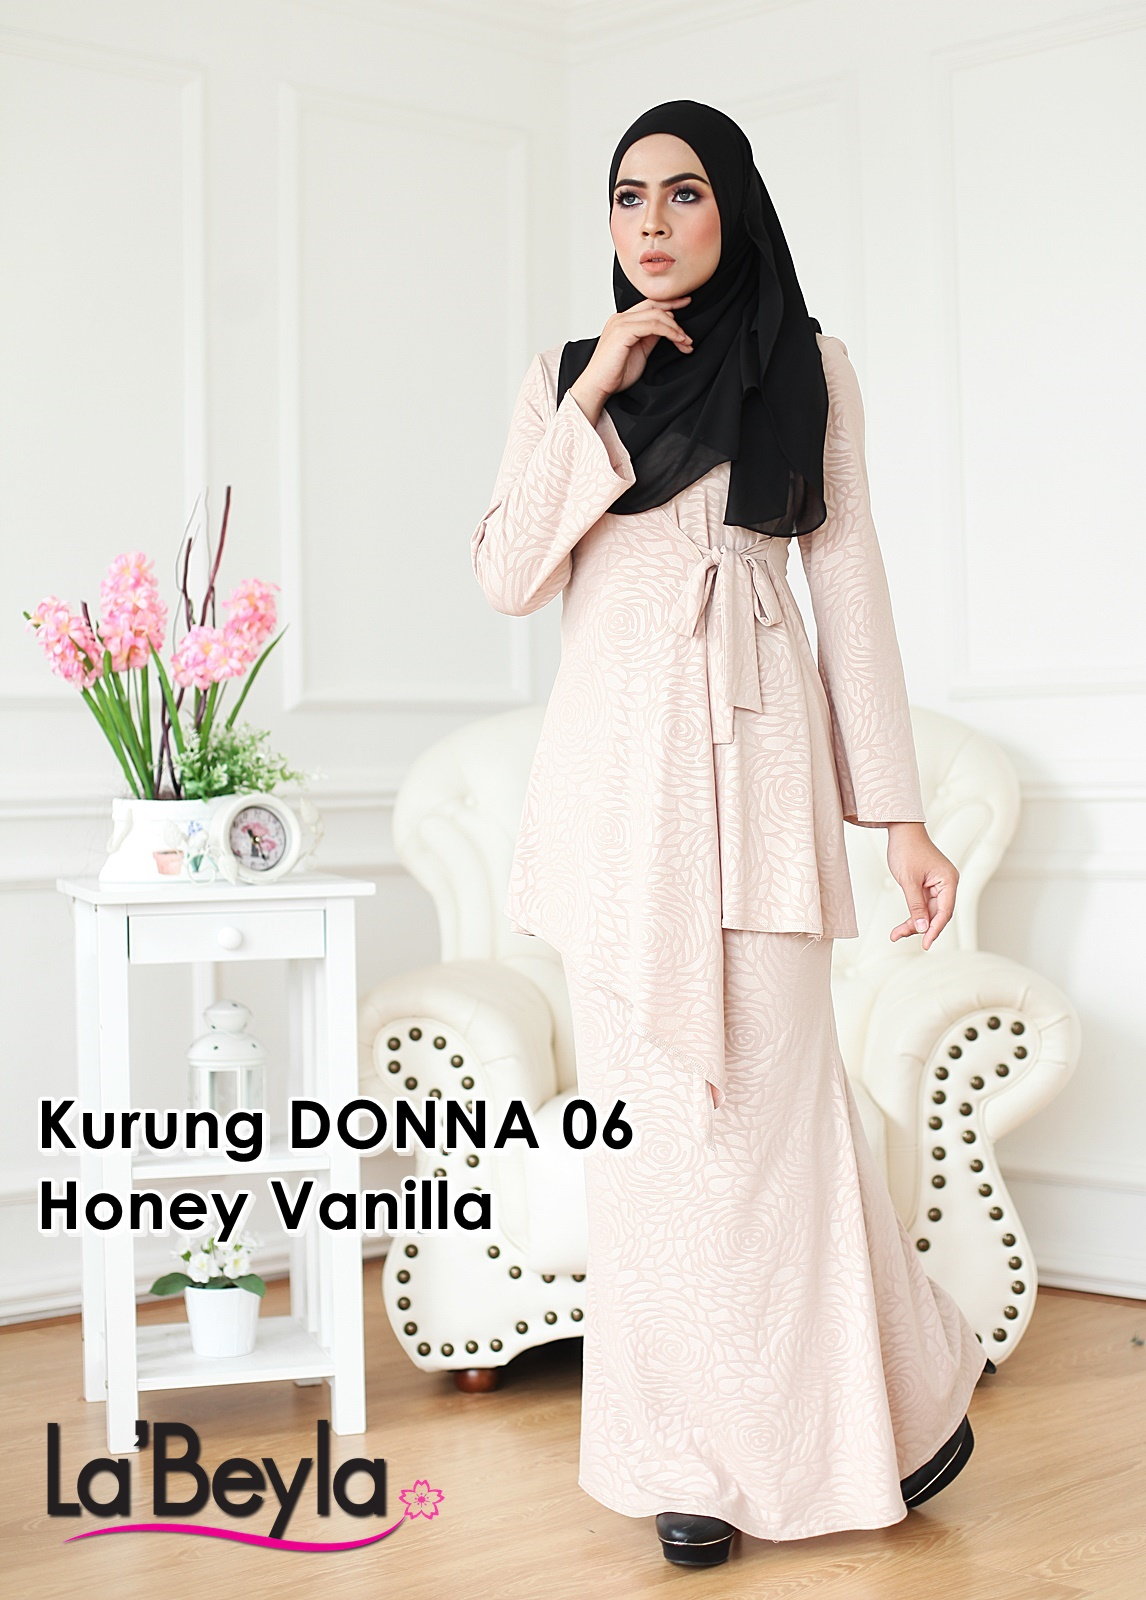 Kurung Donna 06 - Honey Vanilla